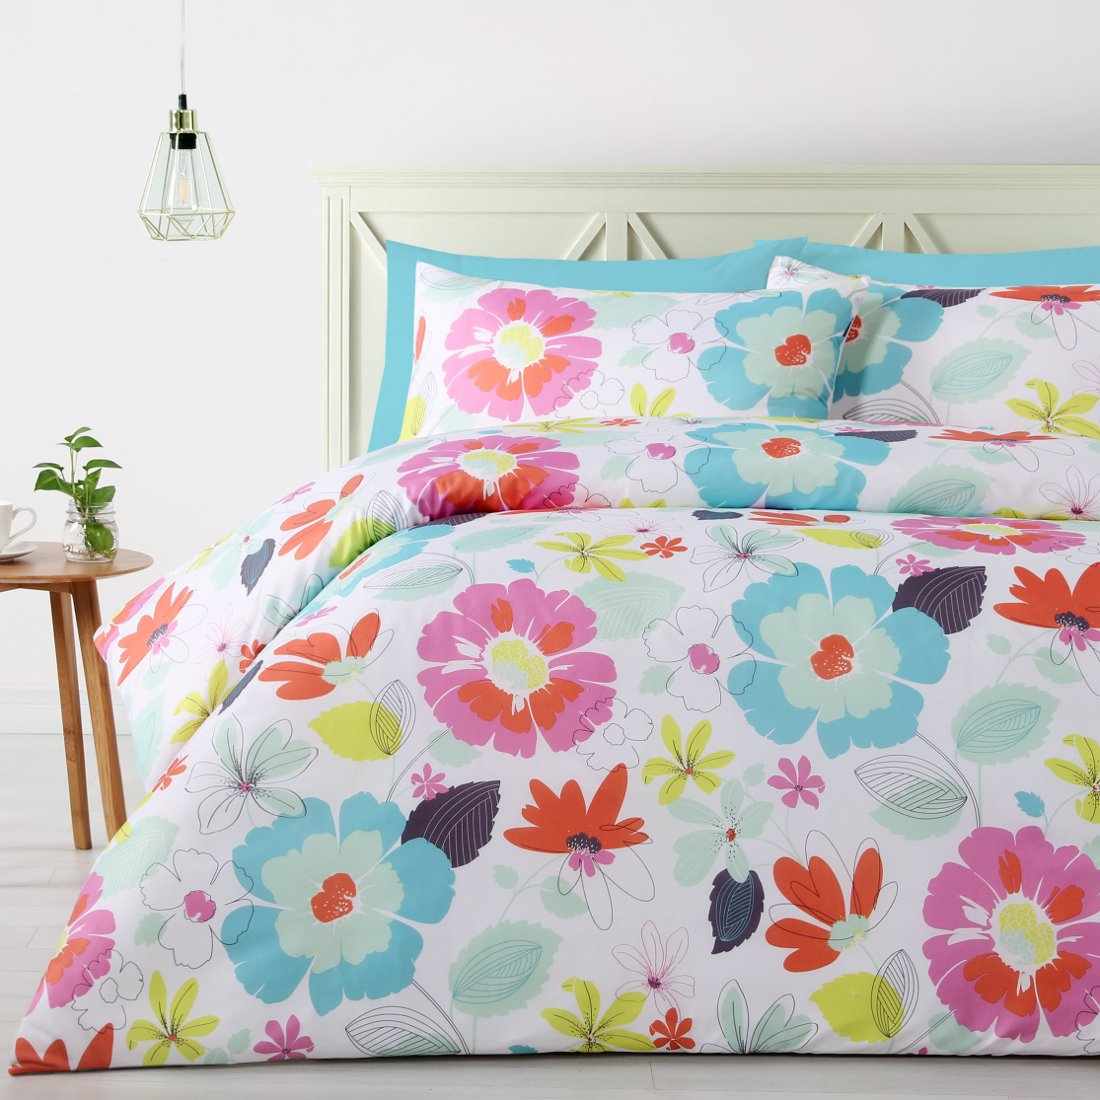 Pale Blue with floral print duvet cover set. 180TC soft feel, polyester quilt cover set.